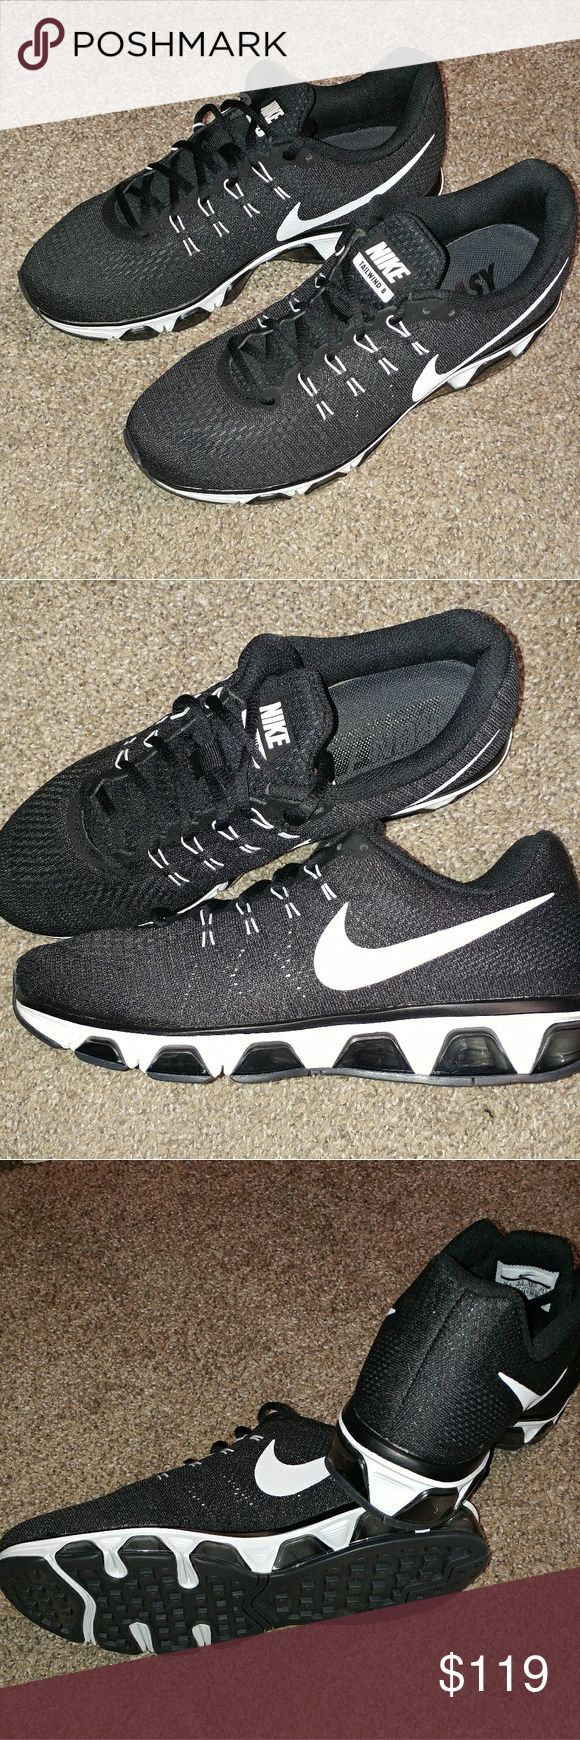 MENS 10.5 NIKE AIR MAX TAILWIND 8 RUNNING SHOES BRAND NEW WITH BOX (NO TOP)  FAST SHIPPING! Nike Shoes Athletic Shoes